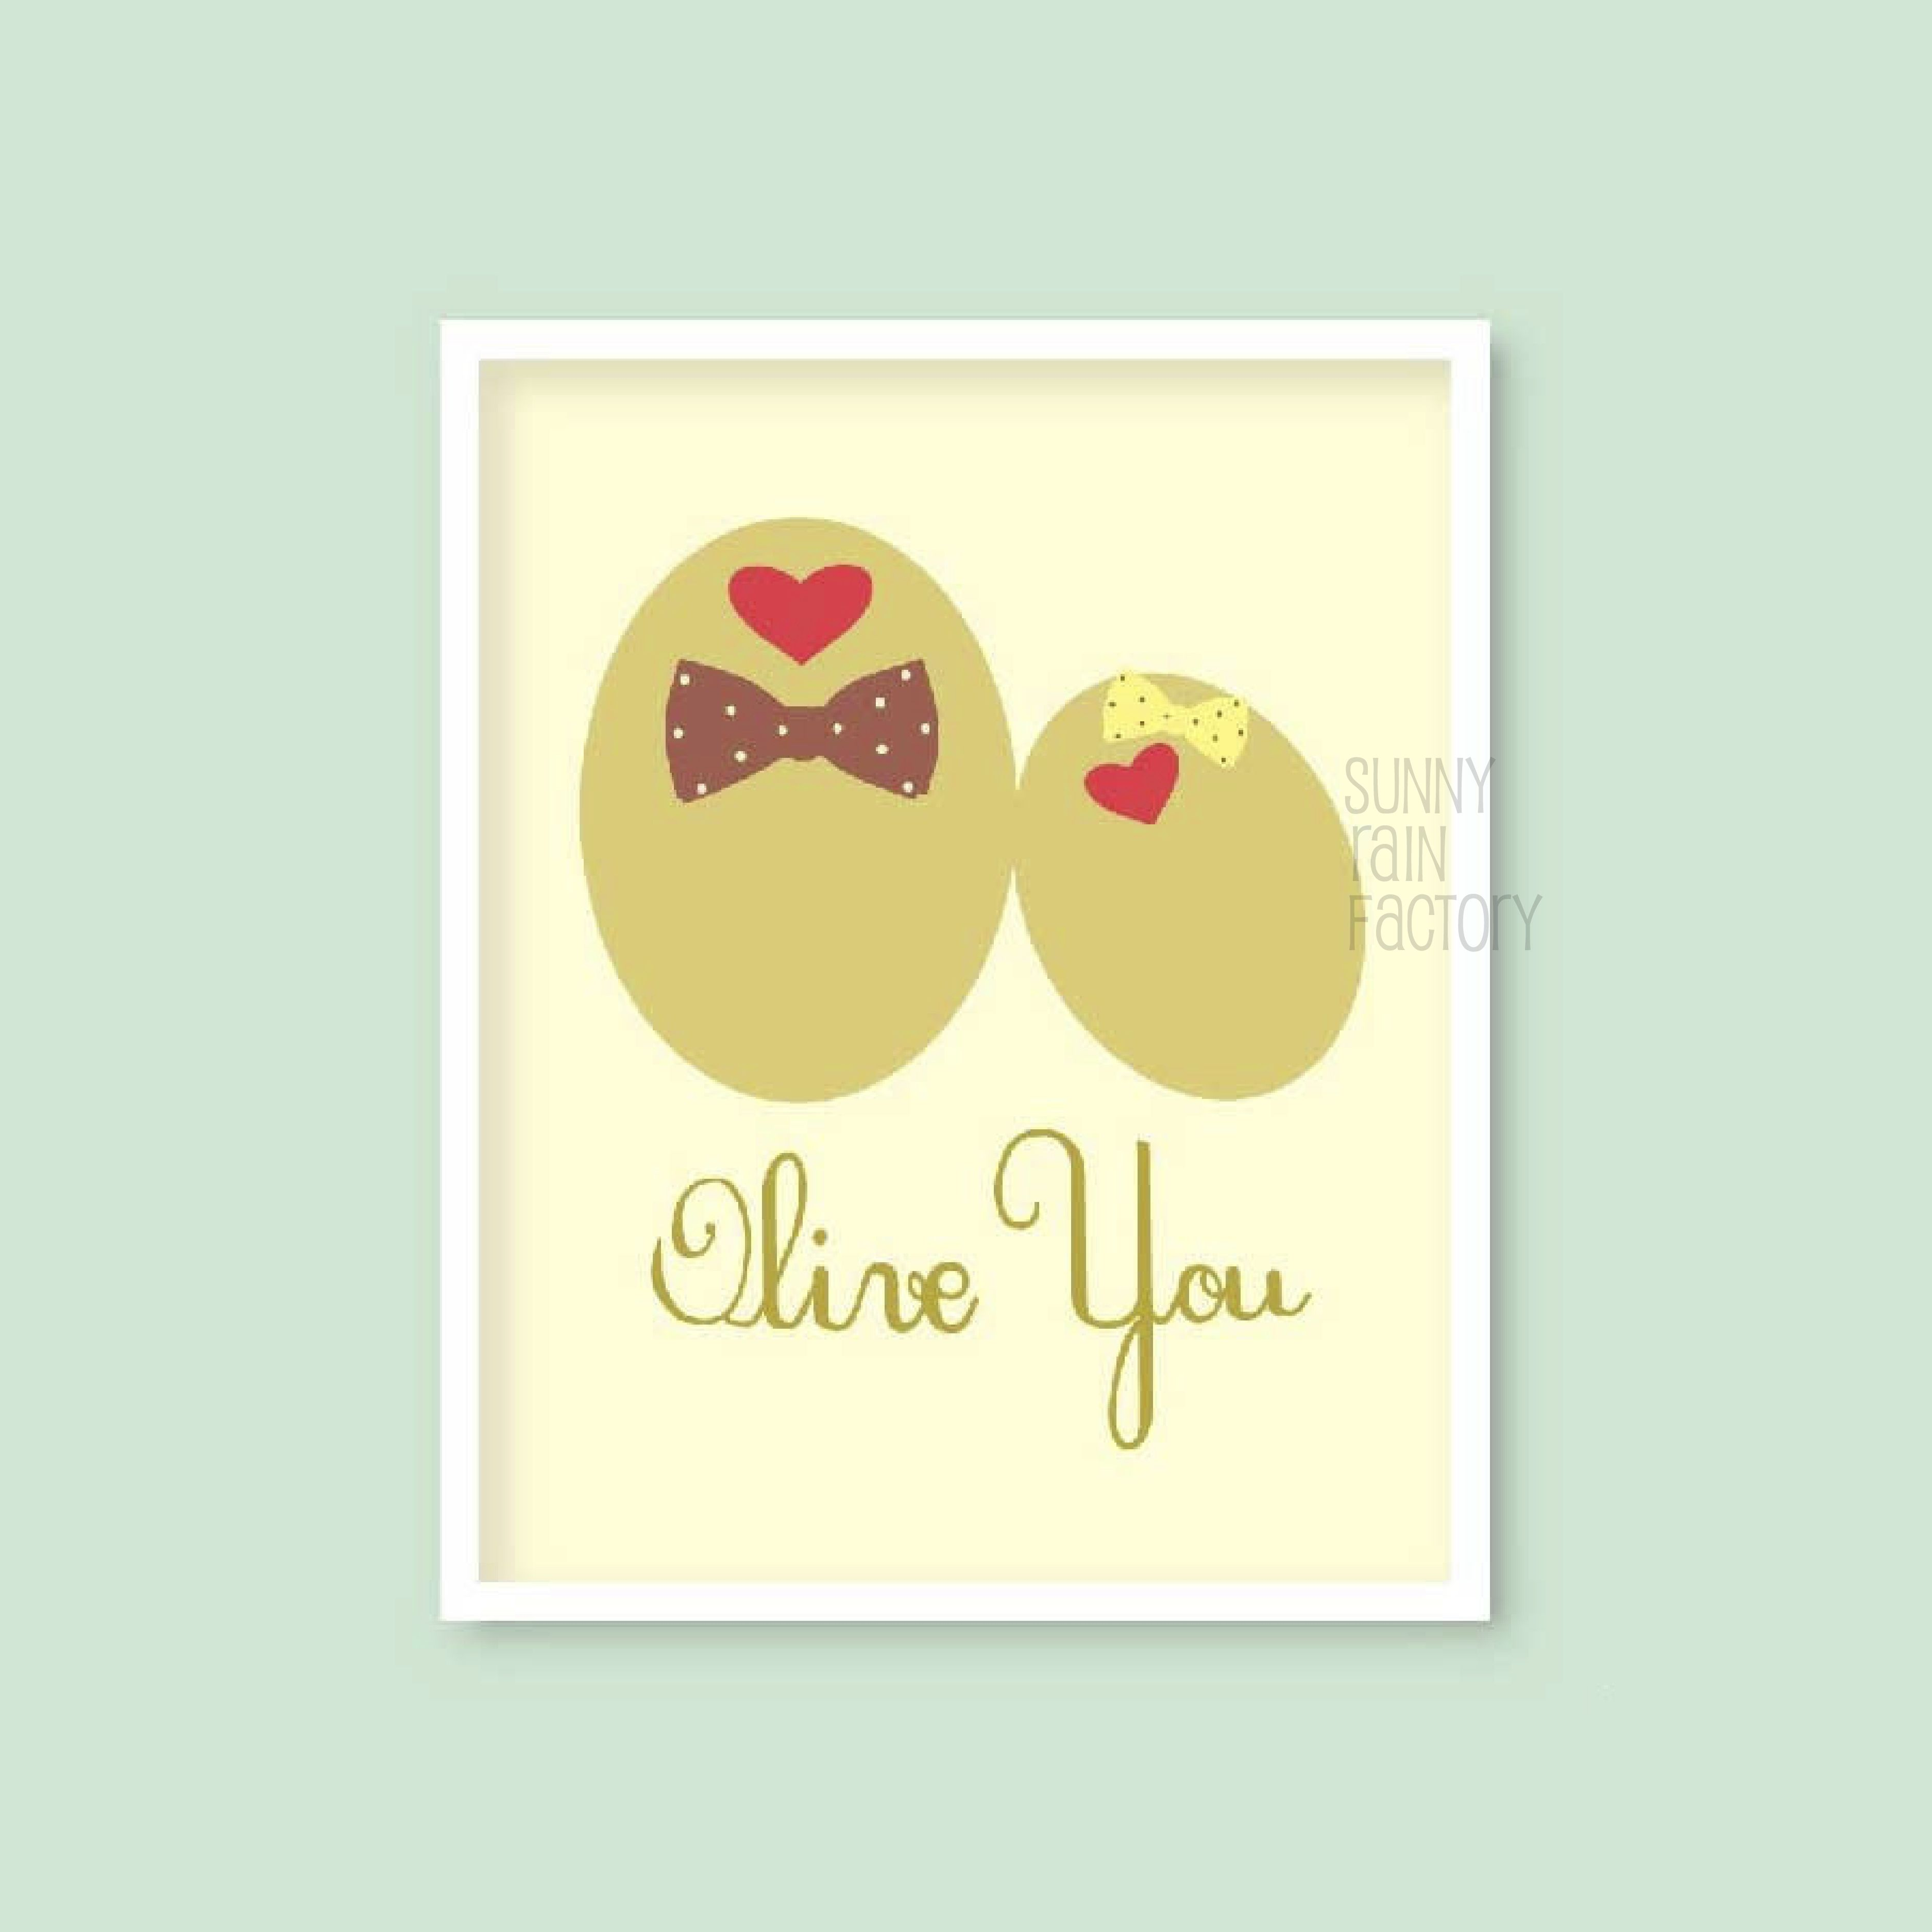 Olive you printable love card download cute funny anniversary card ...